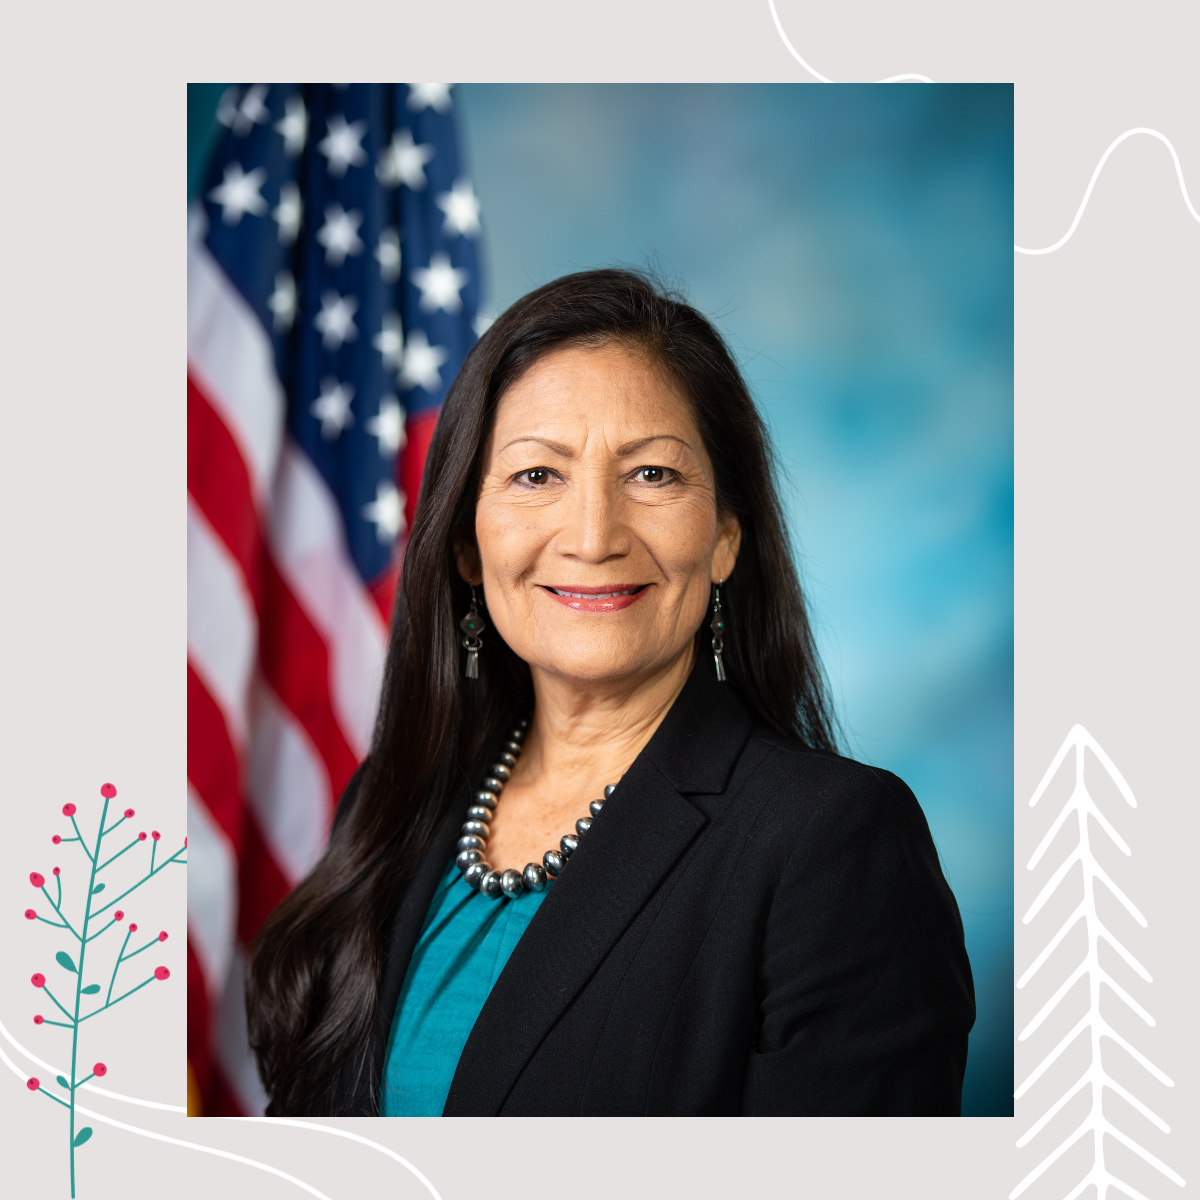 Deb_haaland_image_for_mnn_small